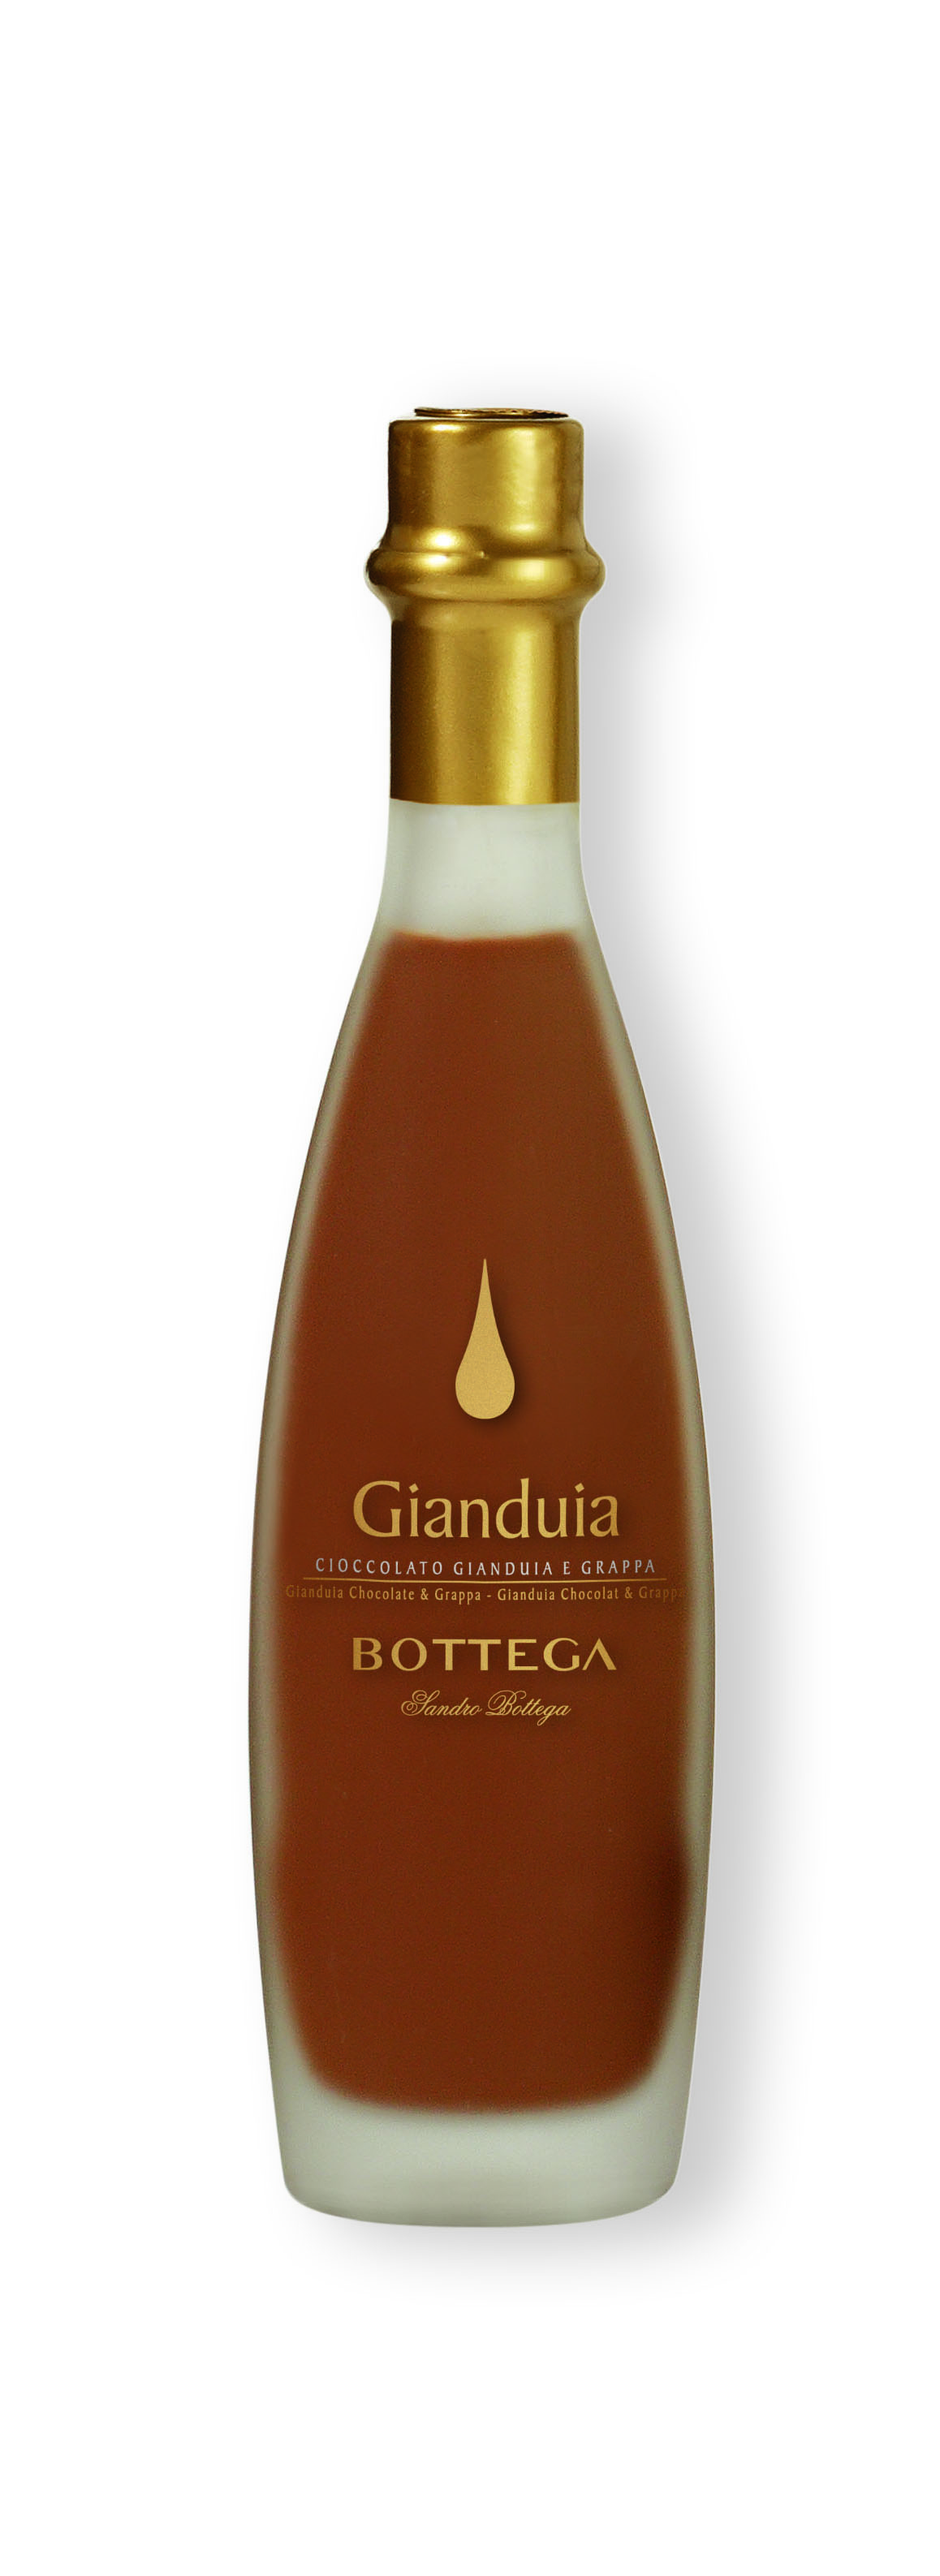 Gianduia Cioccolato e Grappa 0,2 l Bottega